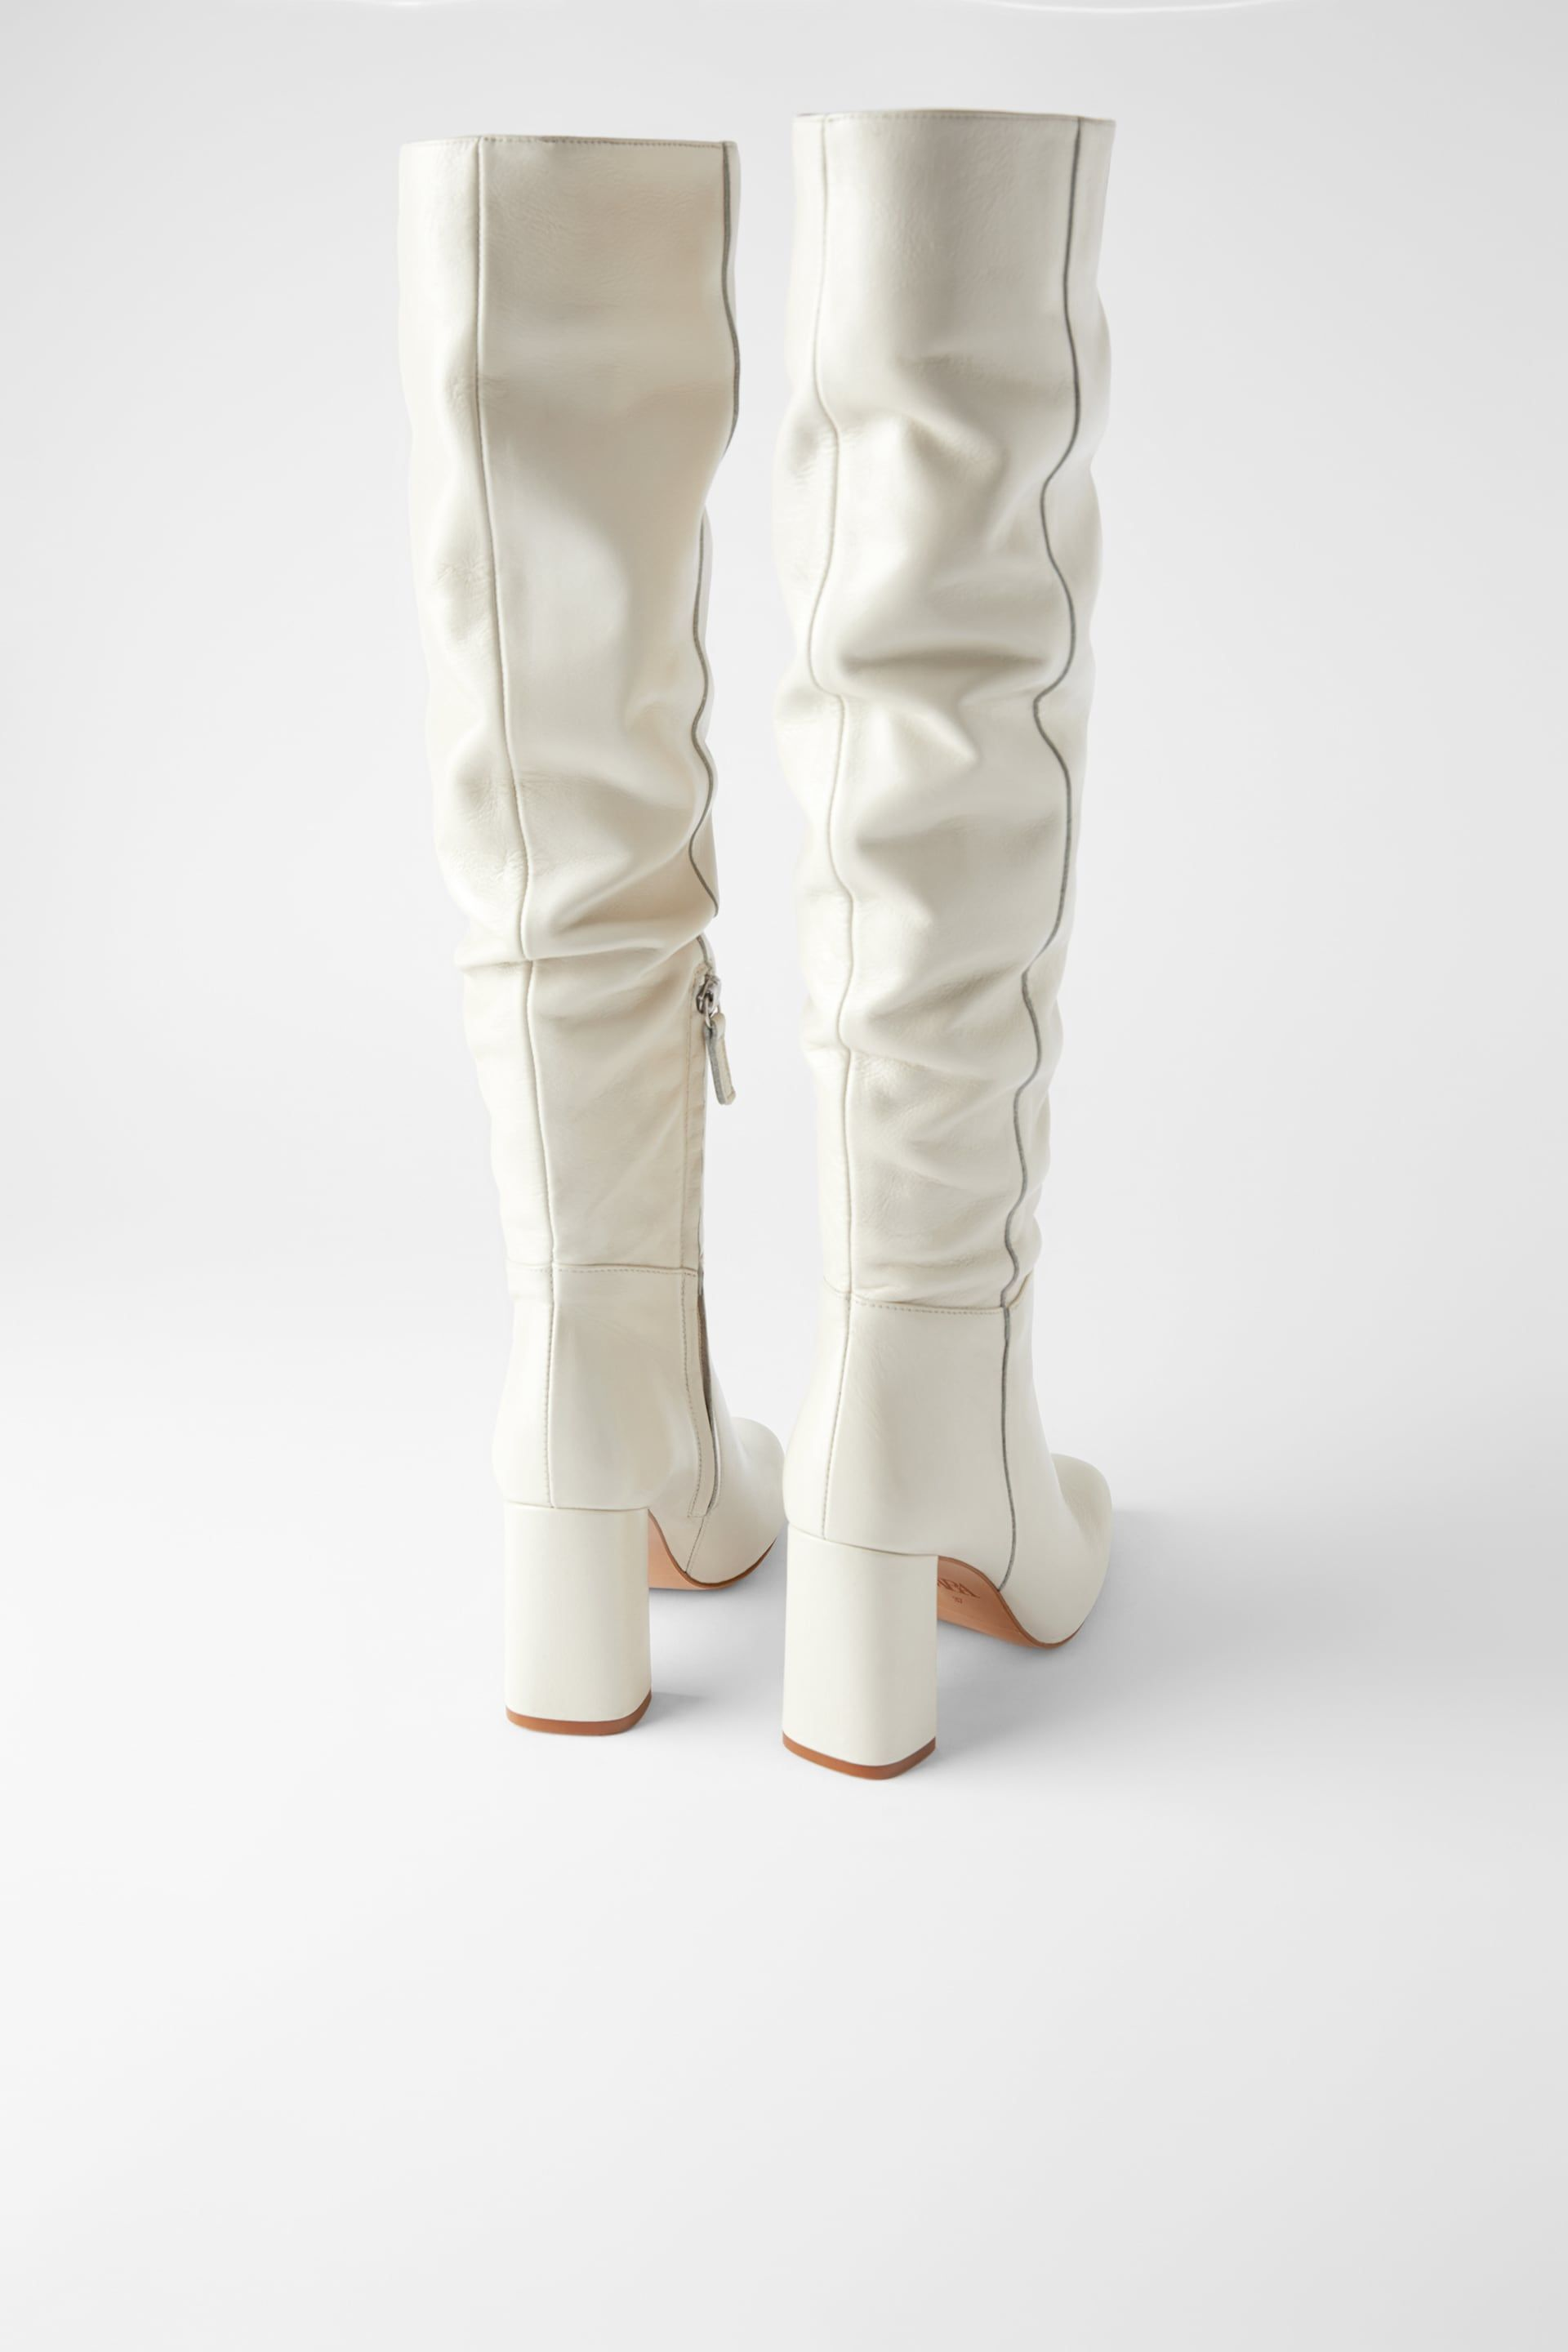 White High Heel Boots Zara In 2020 White High Heel Boots Leather Heeled Boots Boots